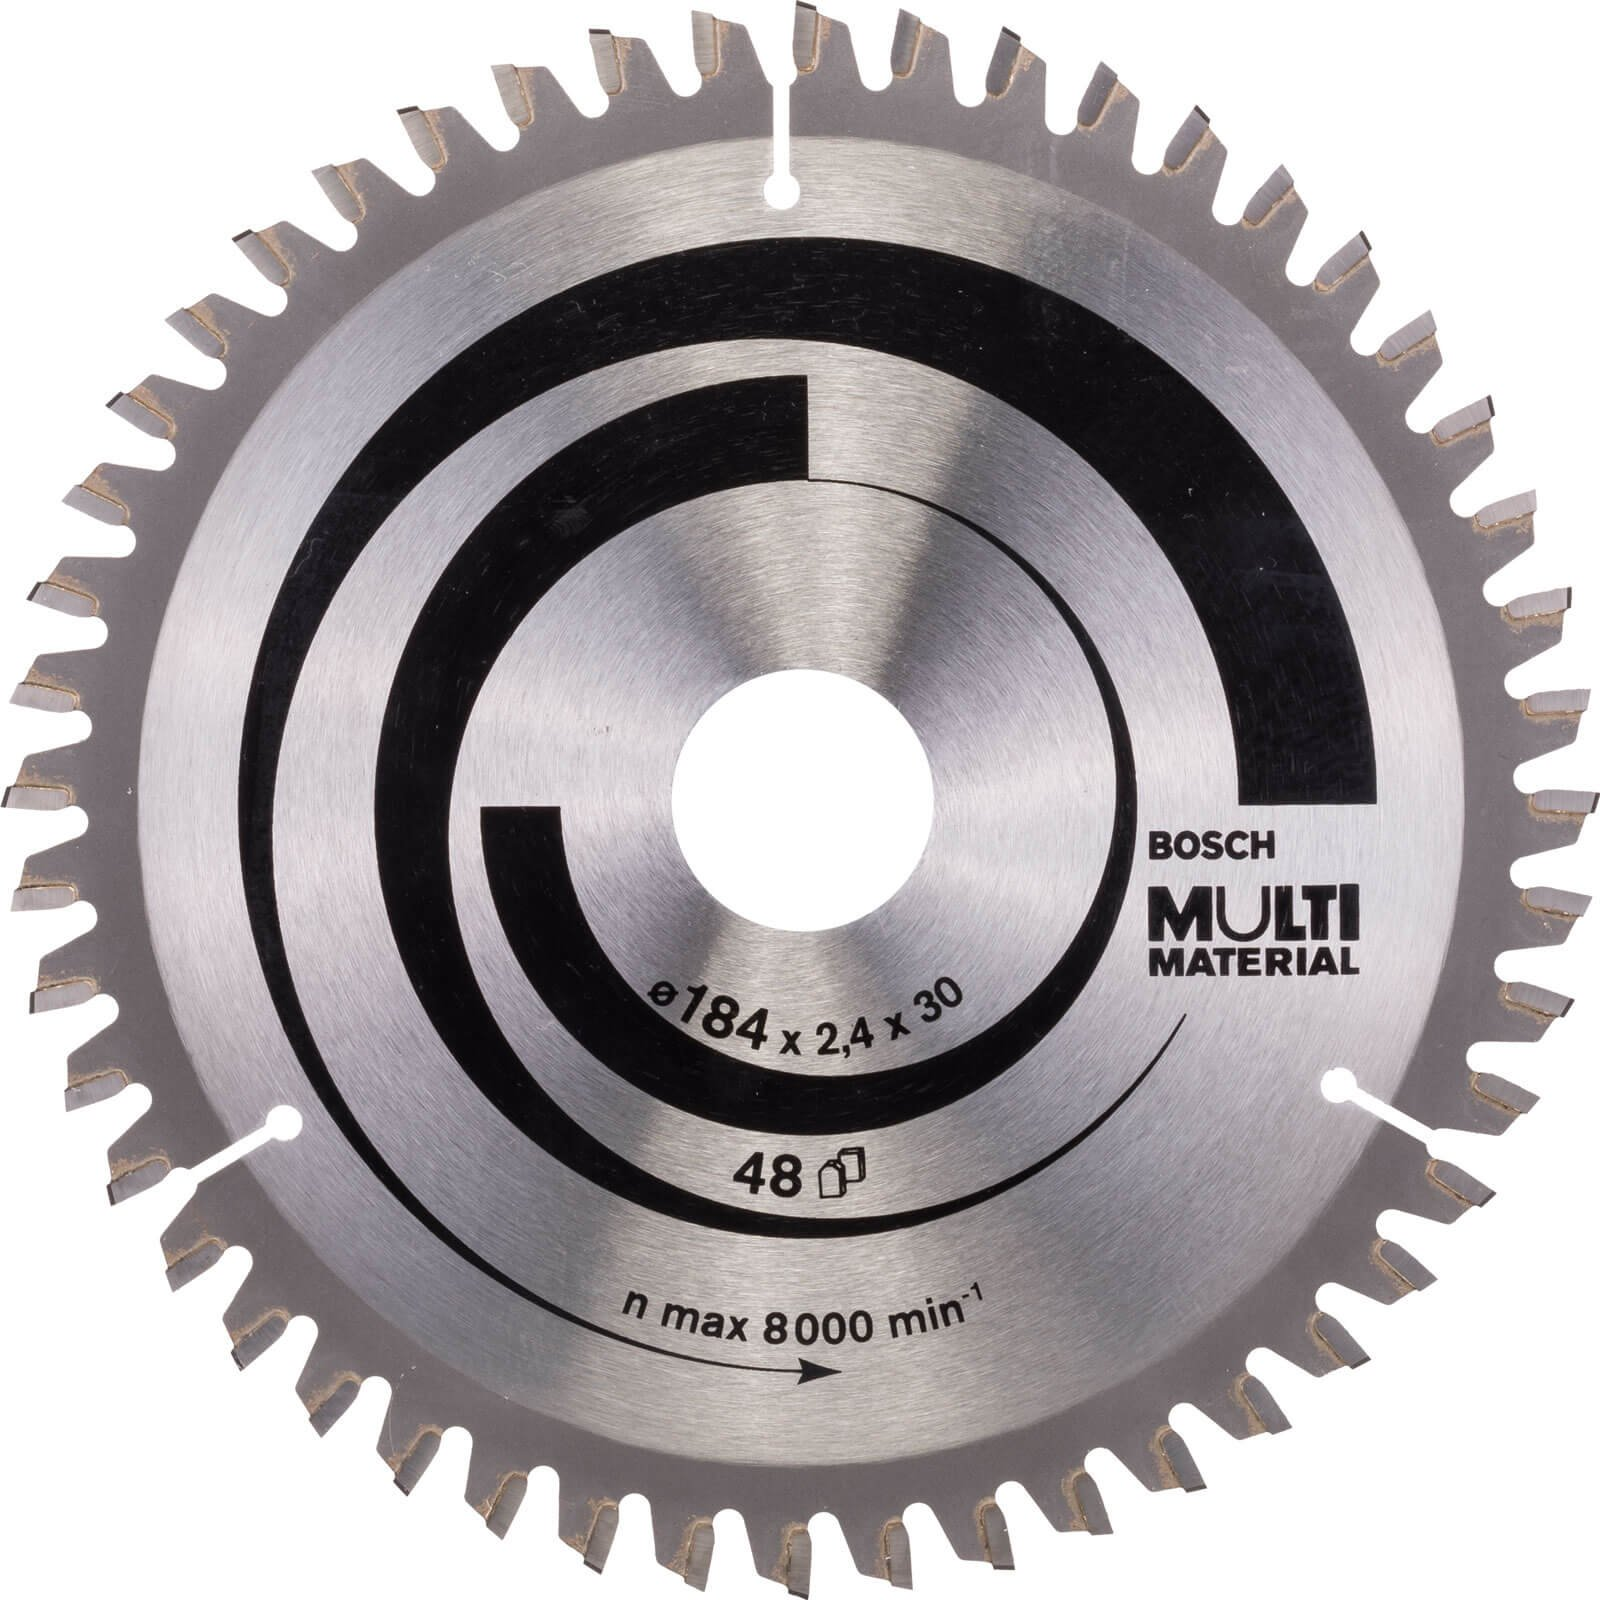 Bosch Multi Material Cutting Saw Blade 184mm 48T 30mm